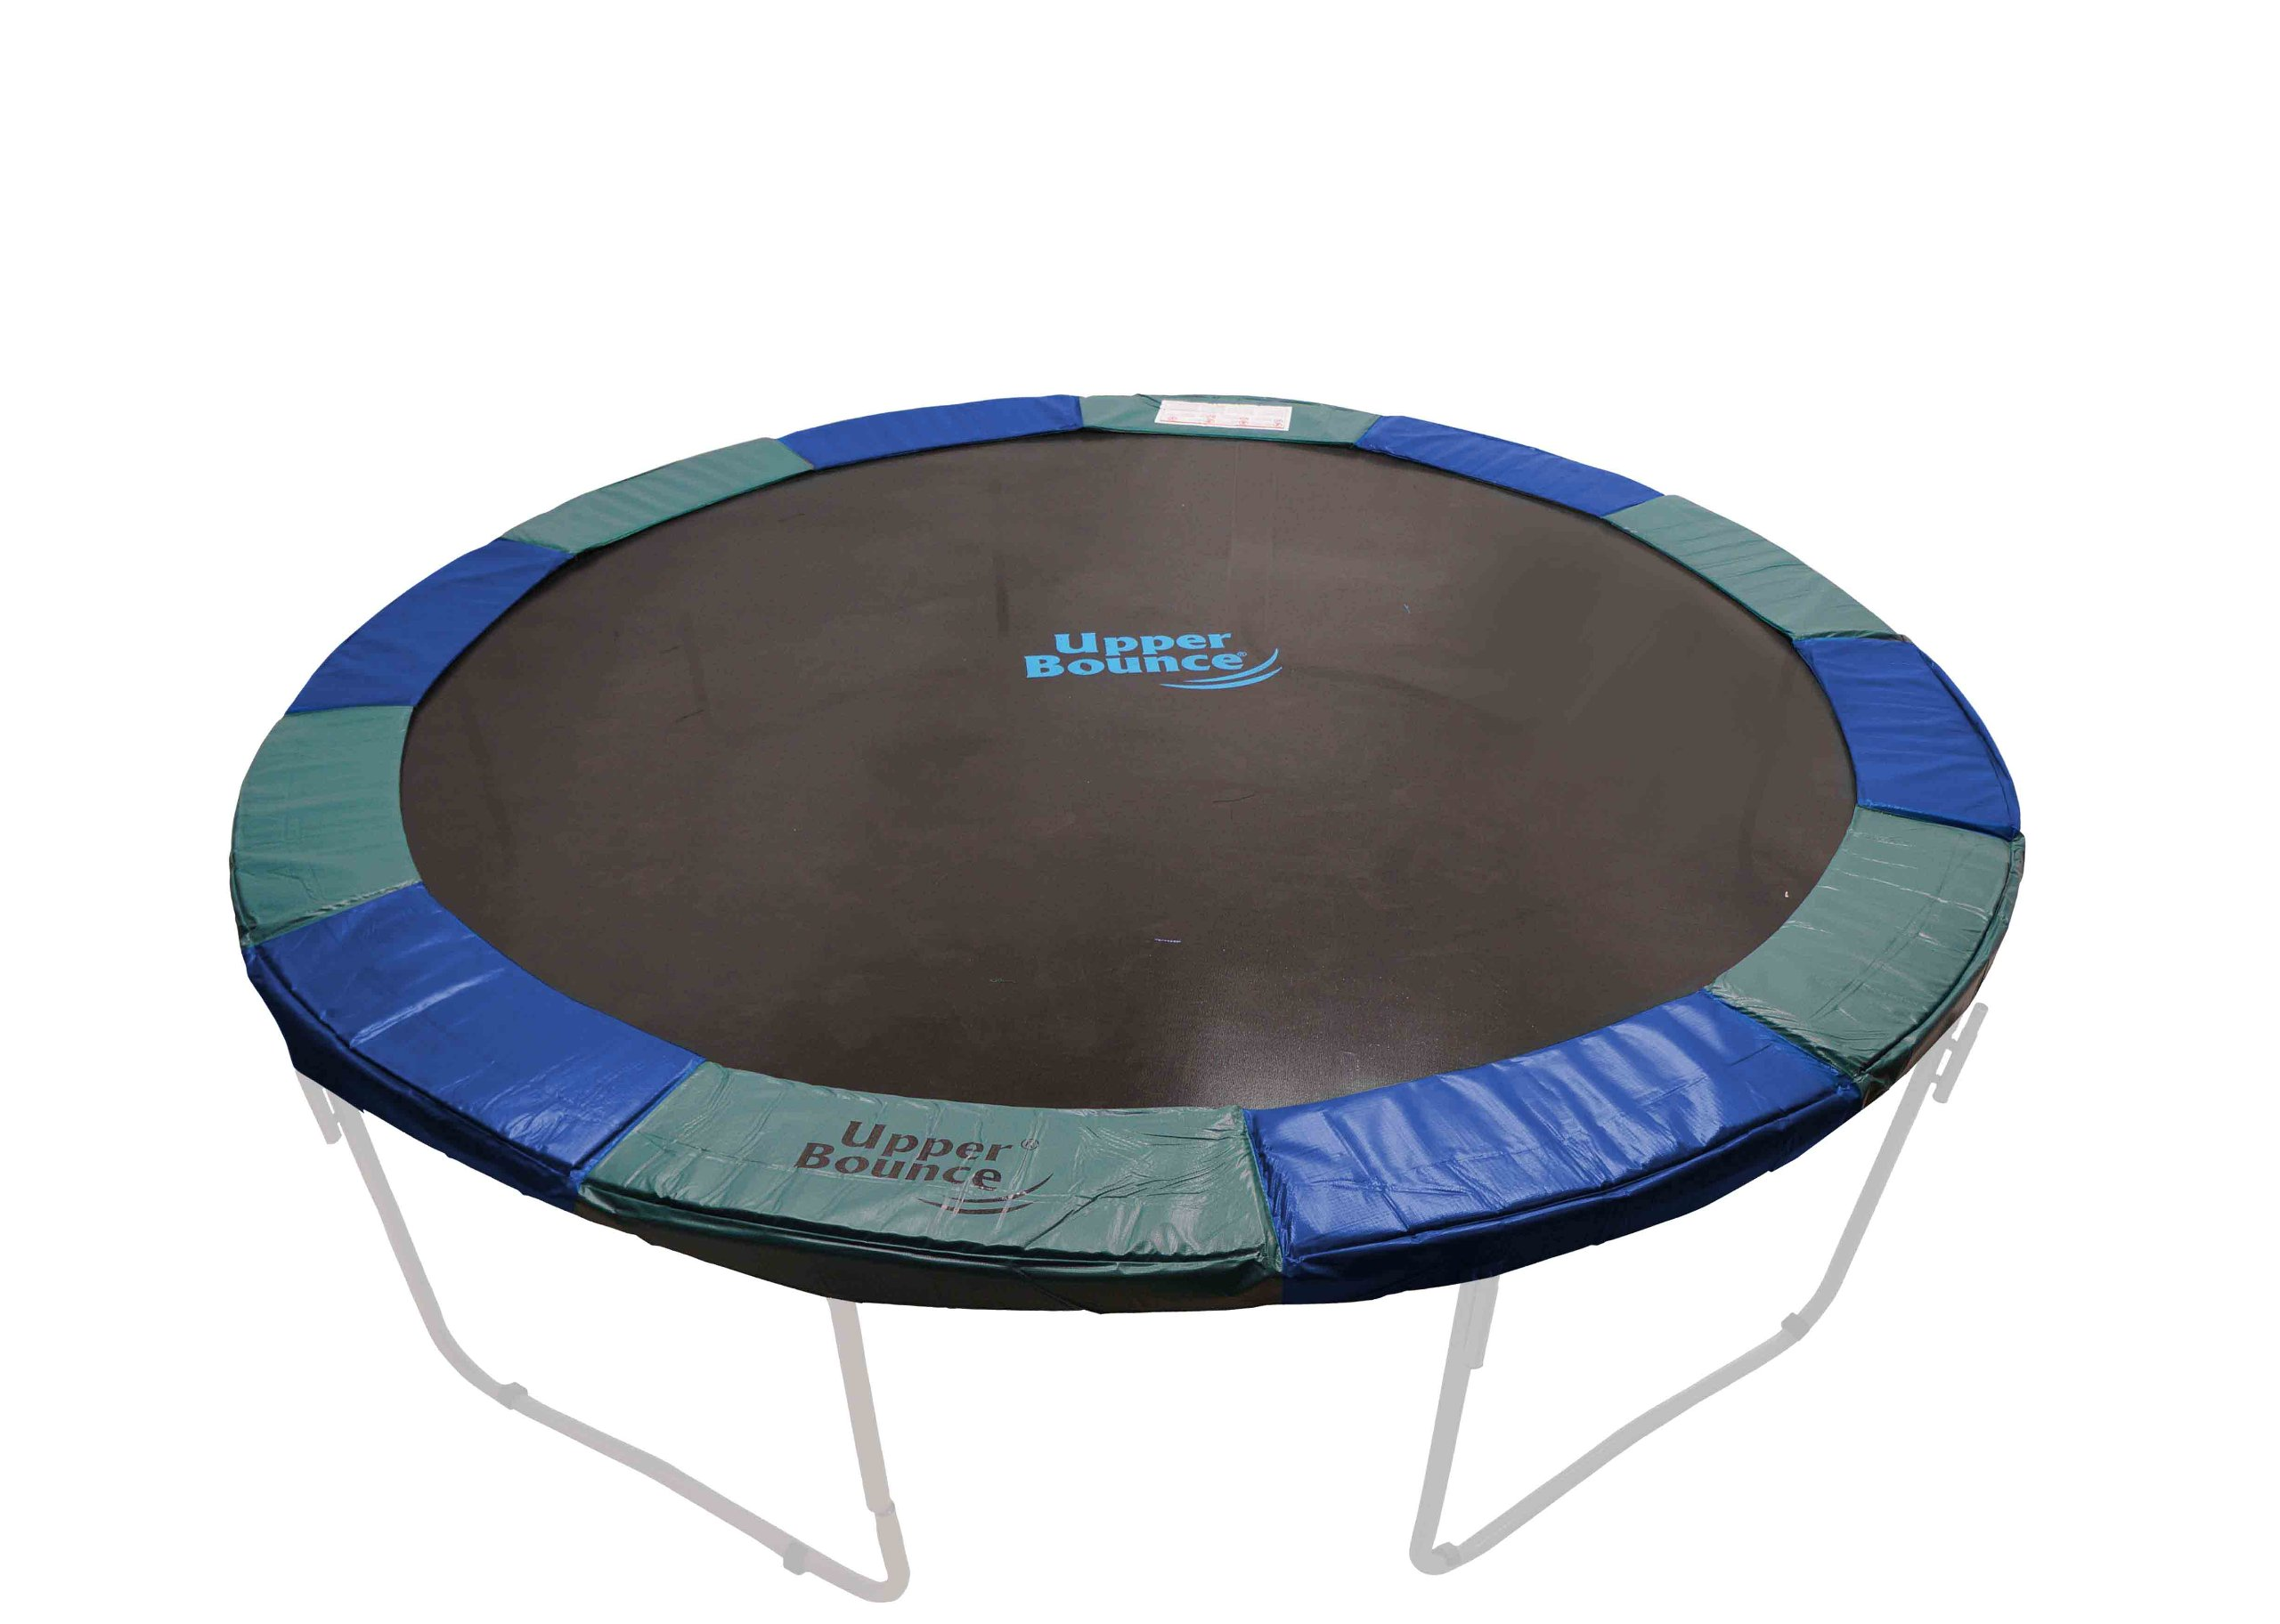 Upper Bounce Trampoline Safety Pad, 14-Feet x 10-Inch, Blue/Green